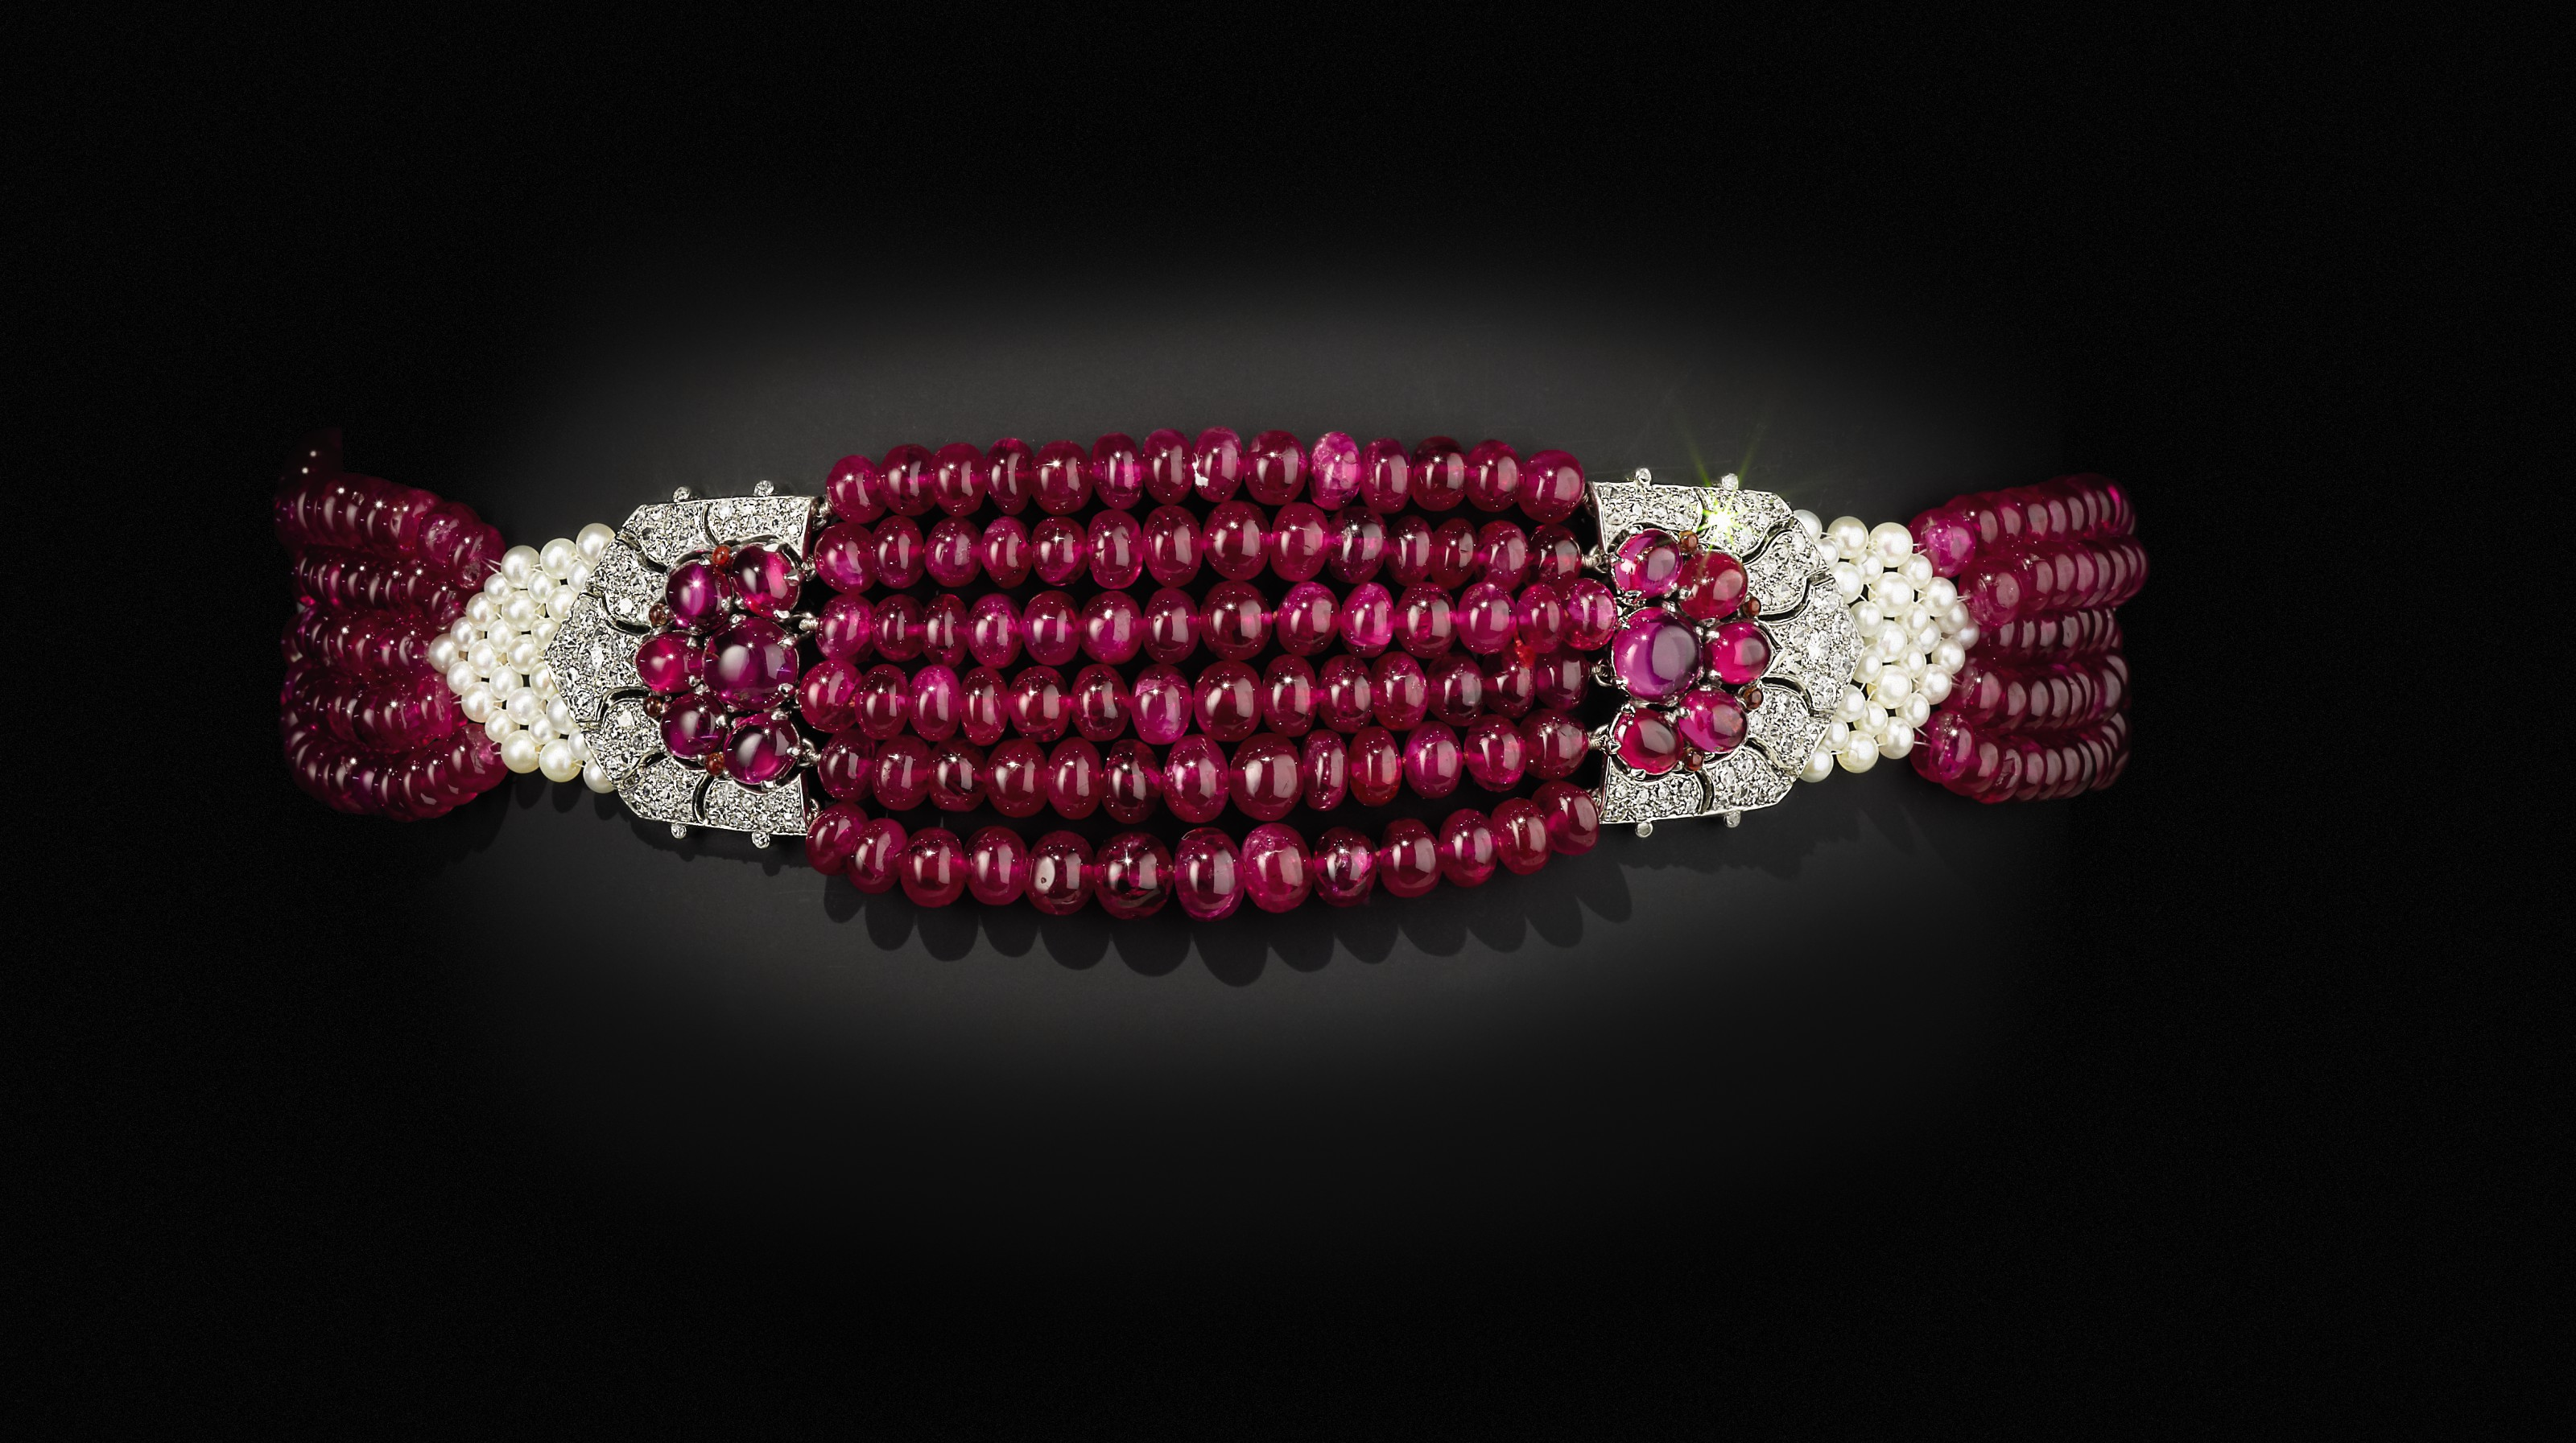 'THE PATIALA RUBY CHOKER' AN ART DECO RUBY, DIAMOND AND NATURAL PEARL CHOKER NECKLACE, CARTIER